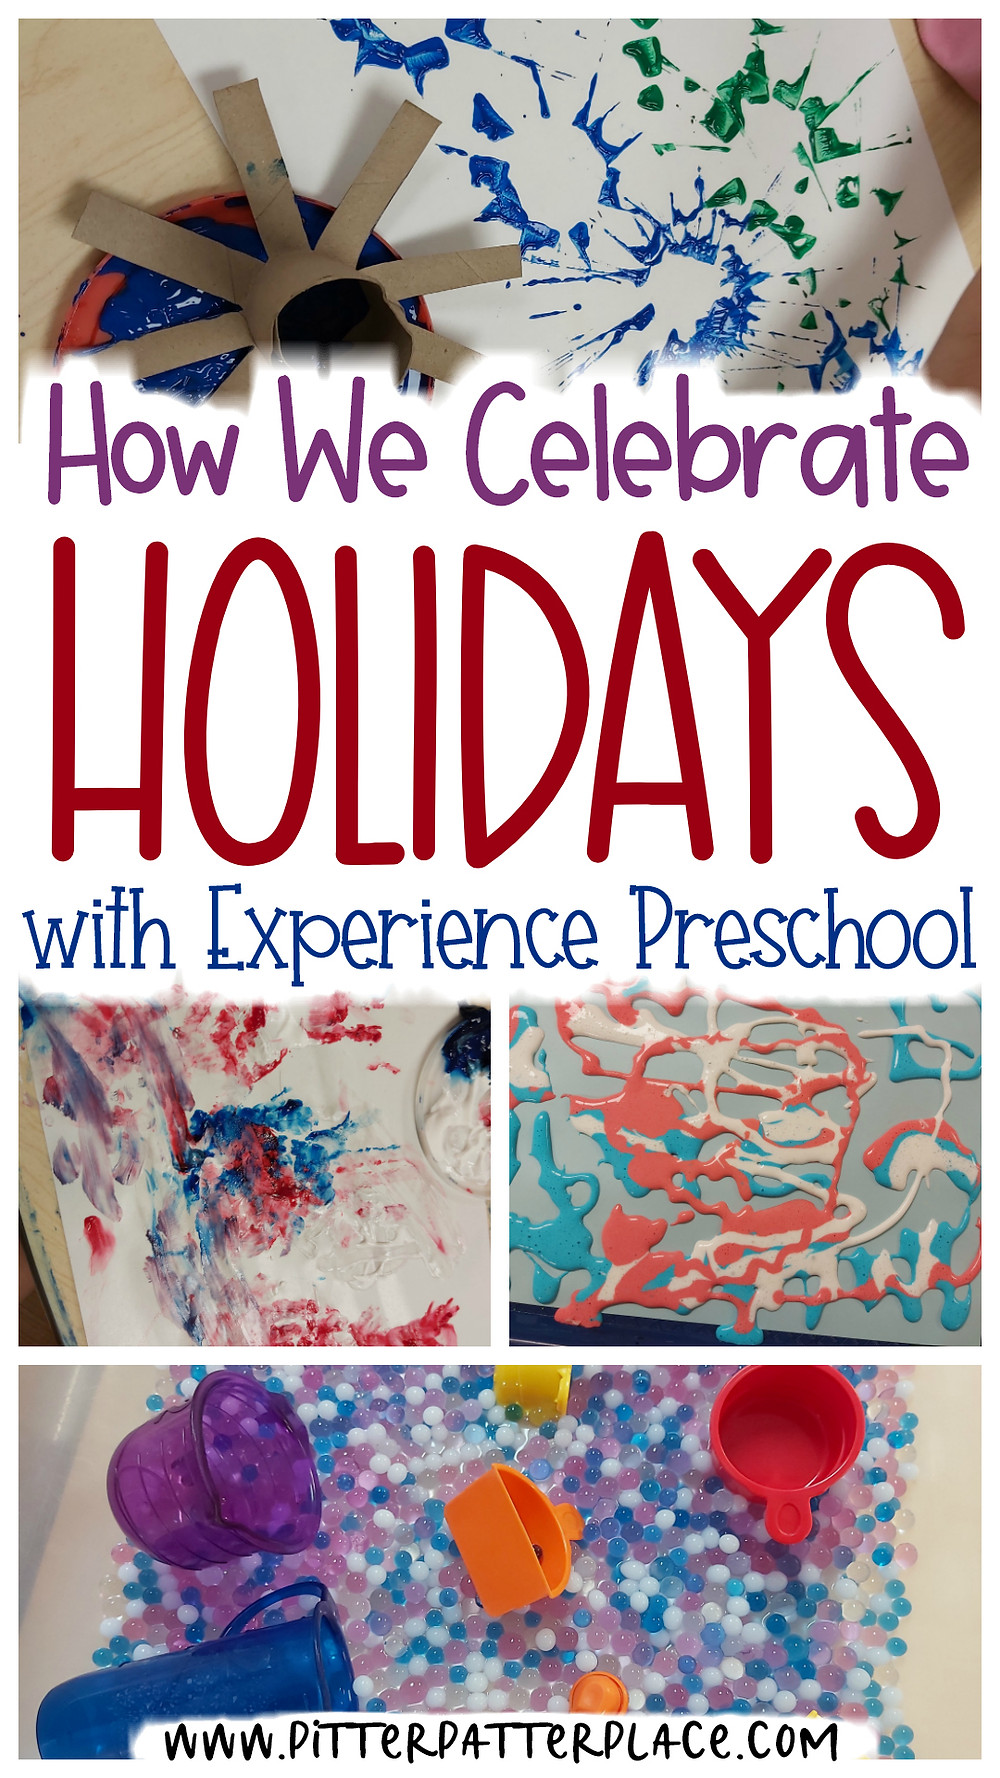 collage of activities with text: How We Celebrate Holidays with Experience Preschool